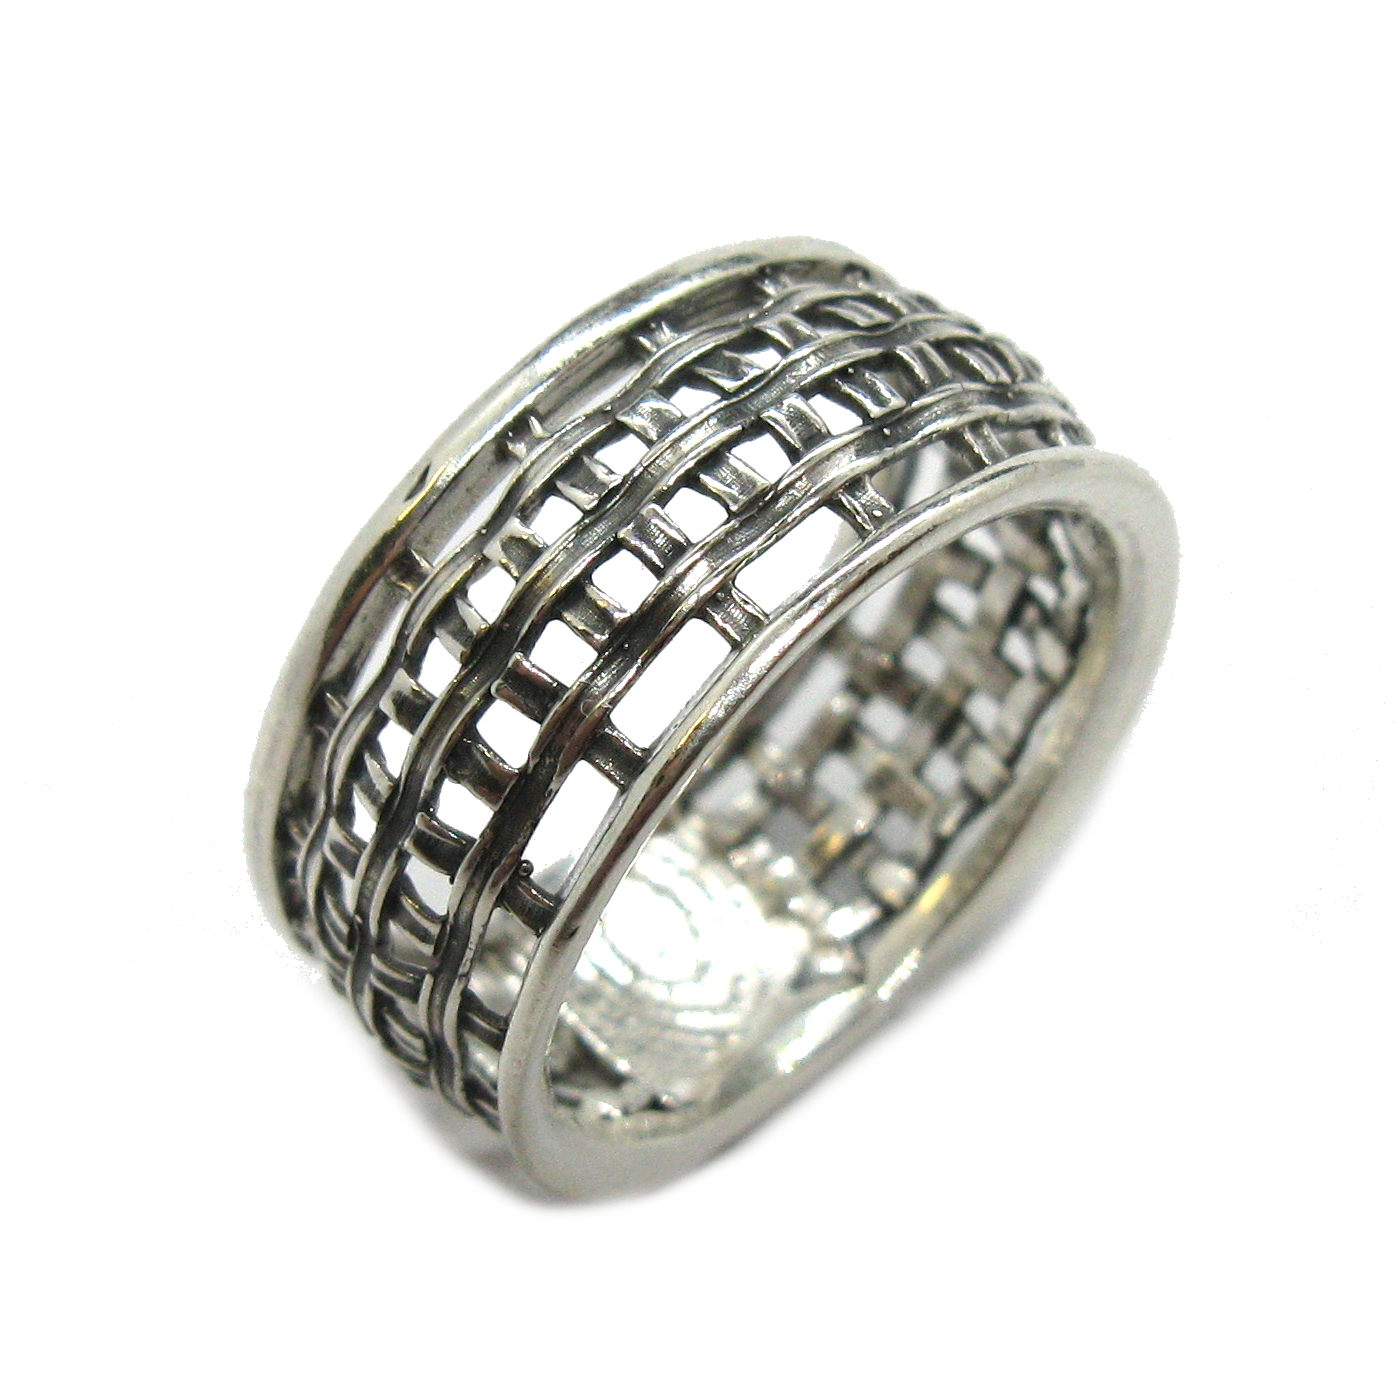 Silver ring - R002031